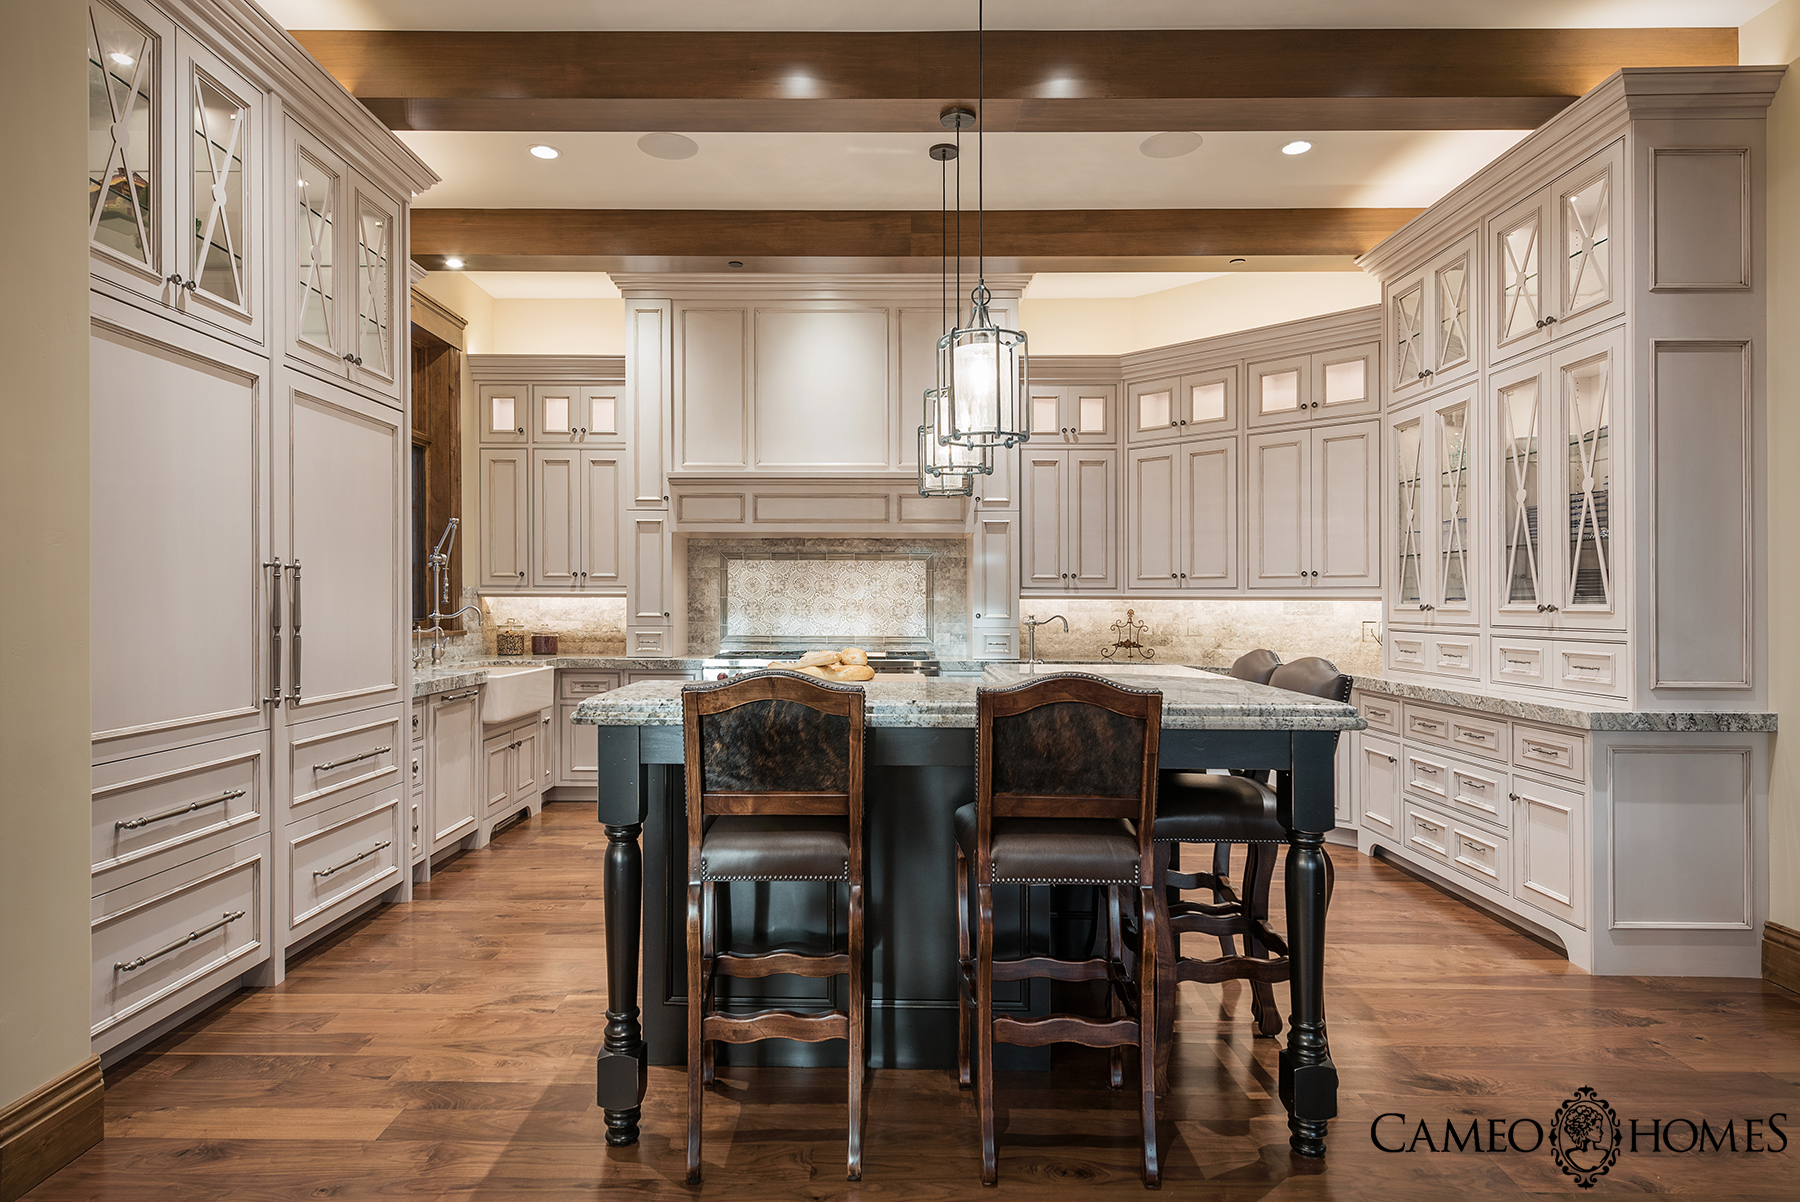 City Home Kitchen Blog  Cameo Homes